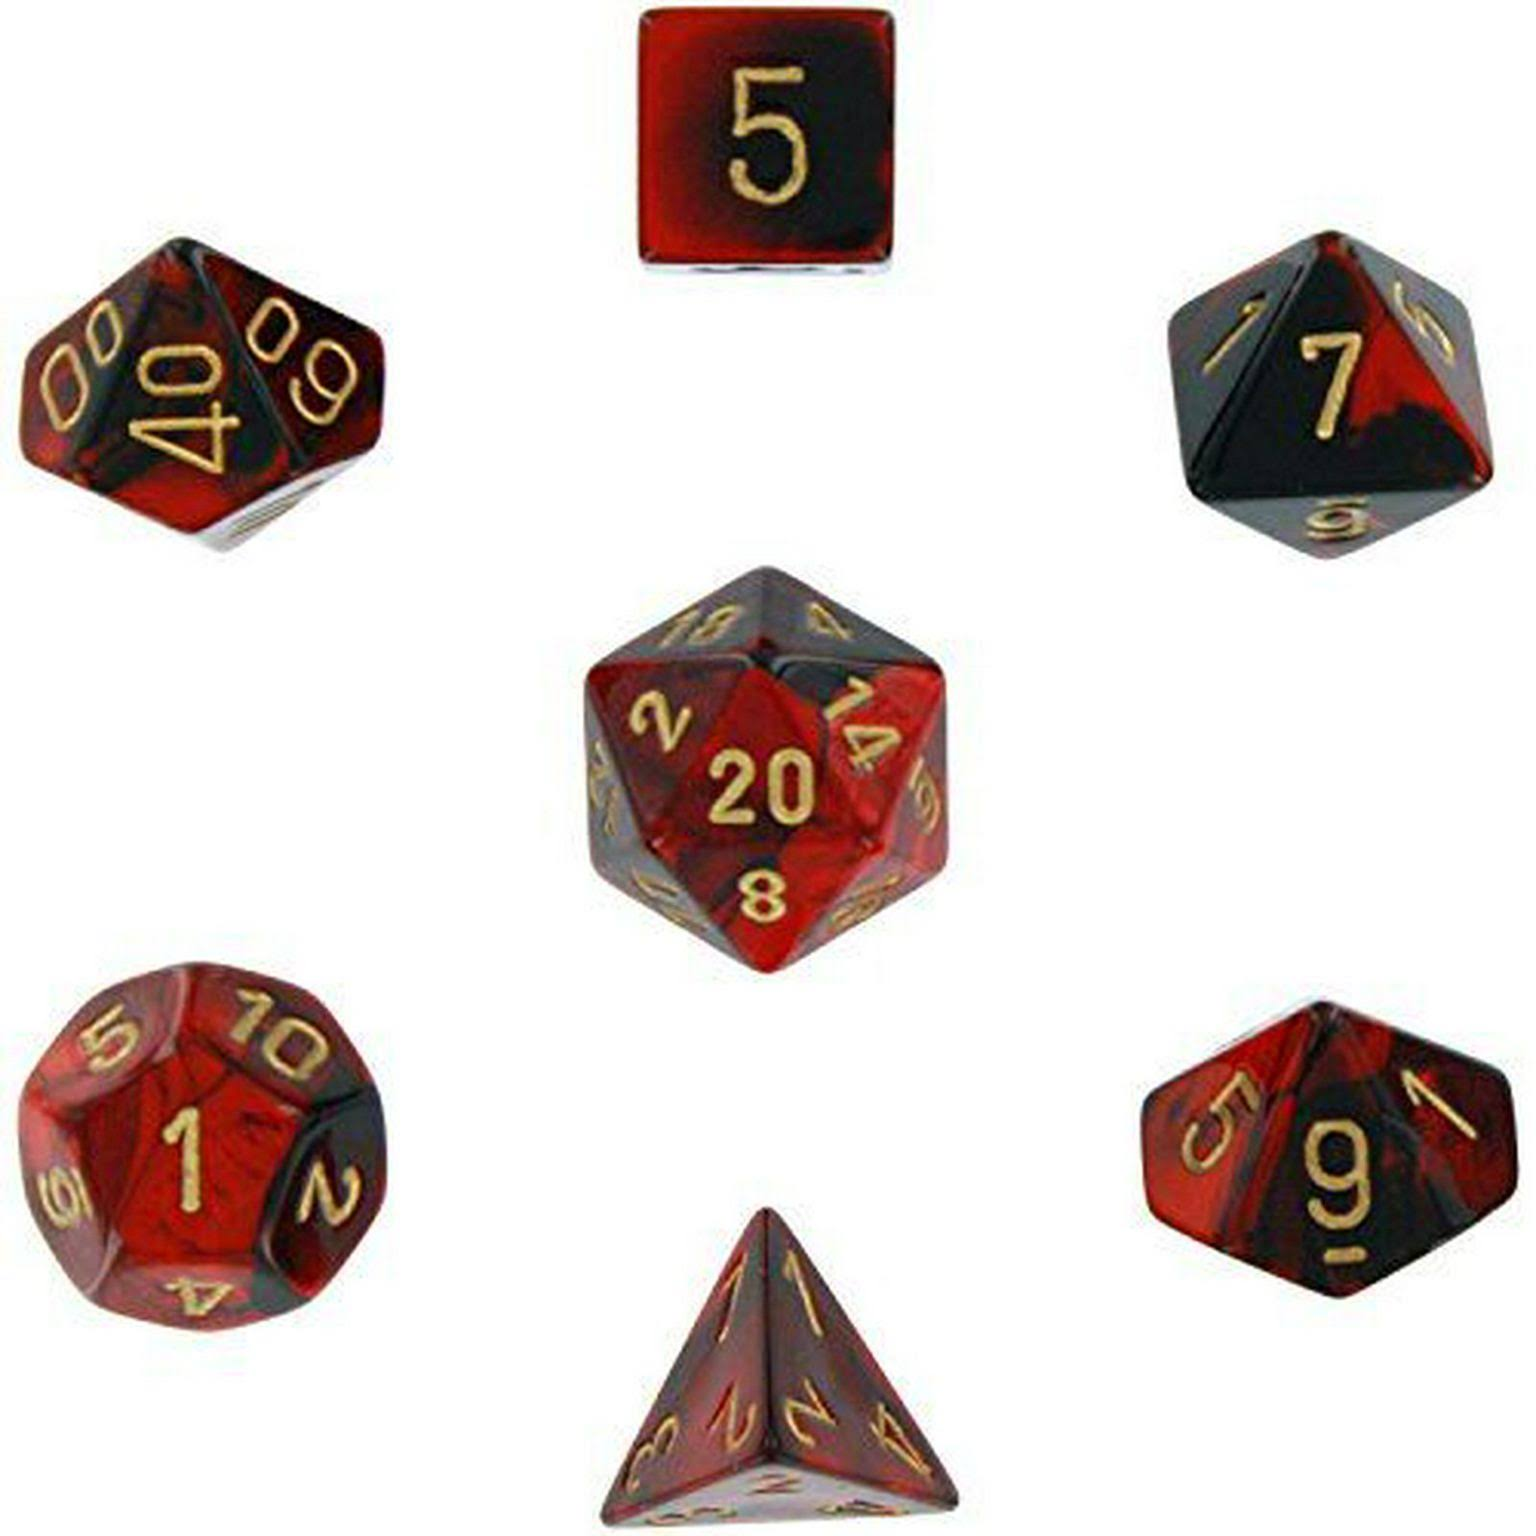 Chessex Gemini Polyhedral 7 Dice Set - Black & Red W Gold Numbers